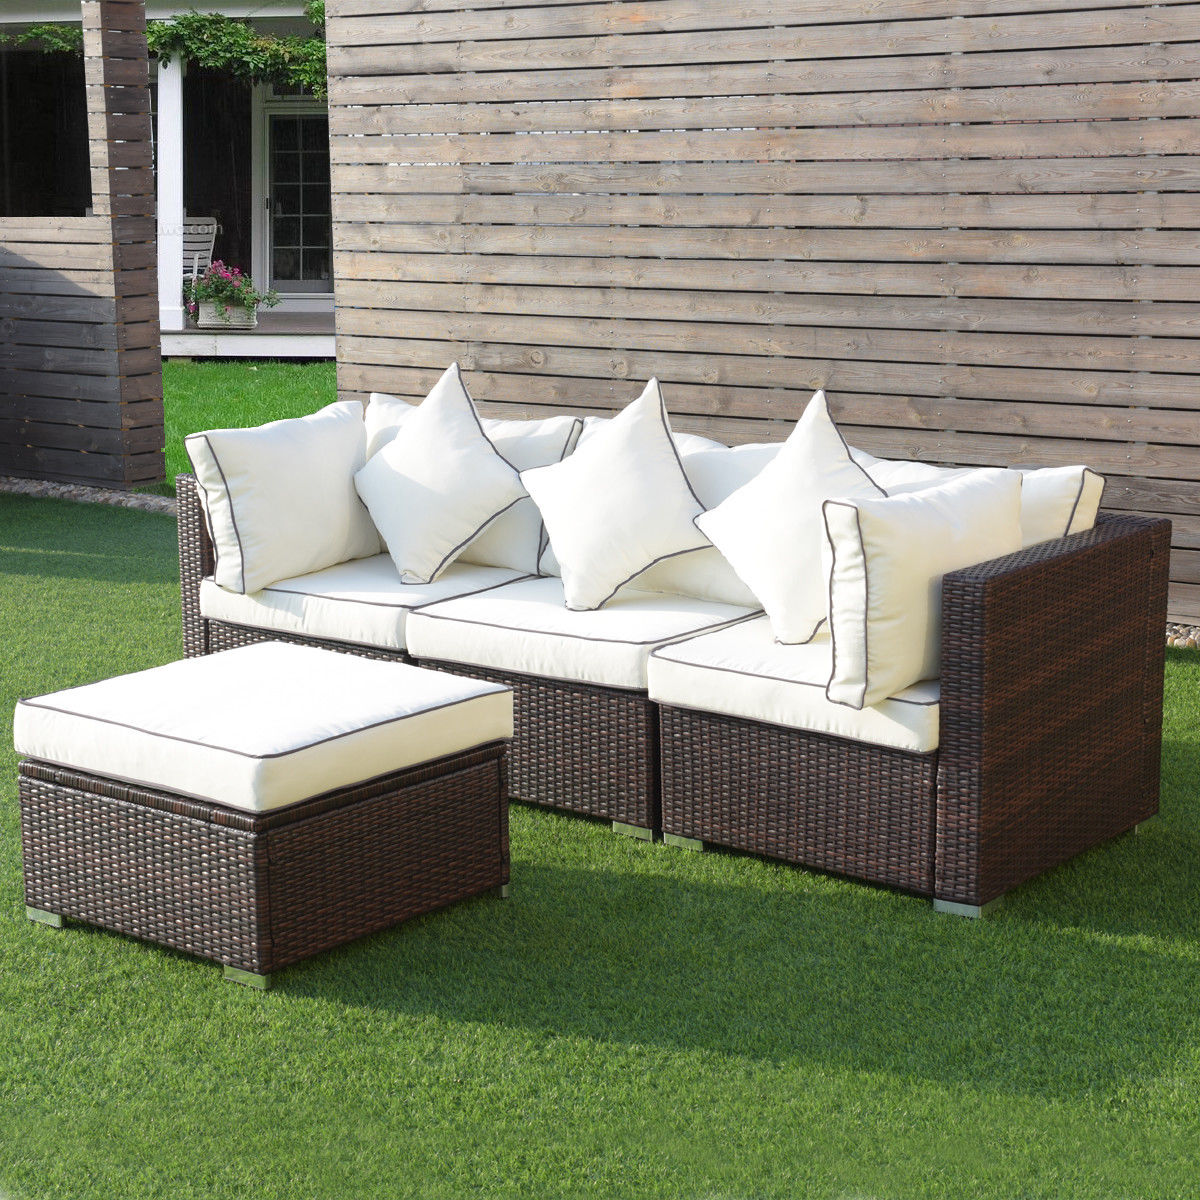 Rattan Sofa Near Me Costway 4pcs Wicker Rattan Sofa Furniture Set Patio Garden Lawn Sofa Cushioned Seat